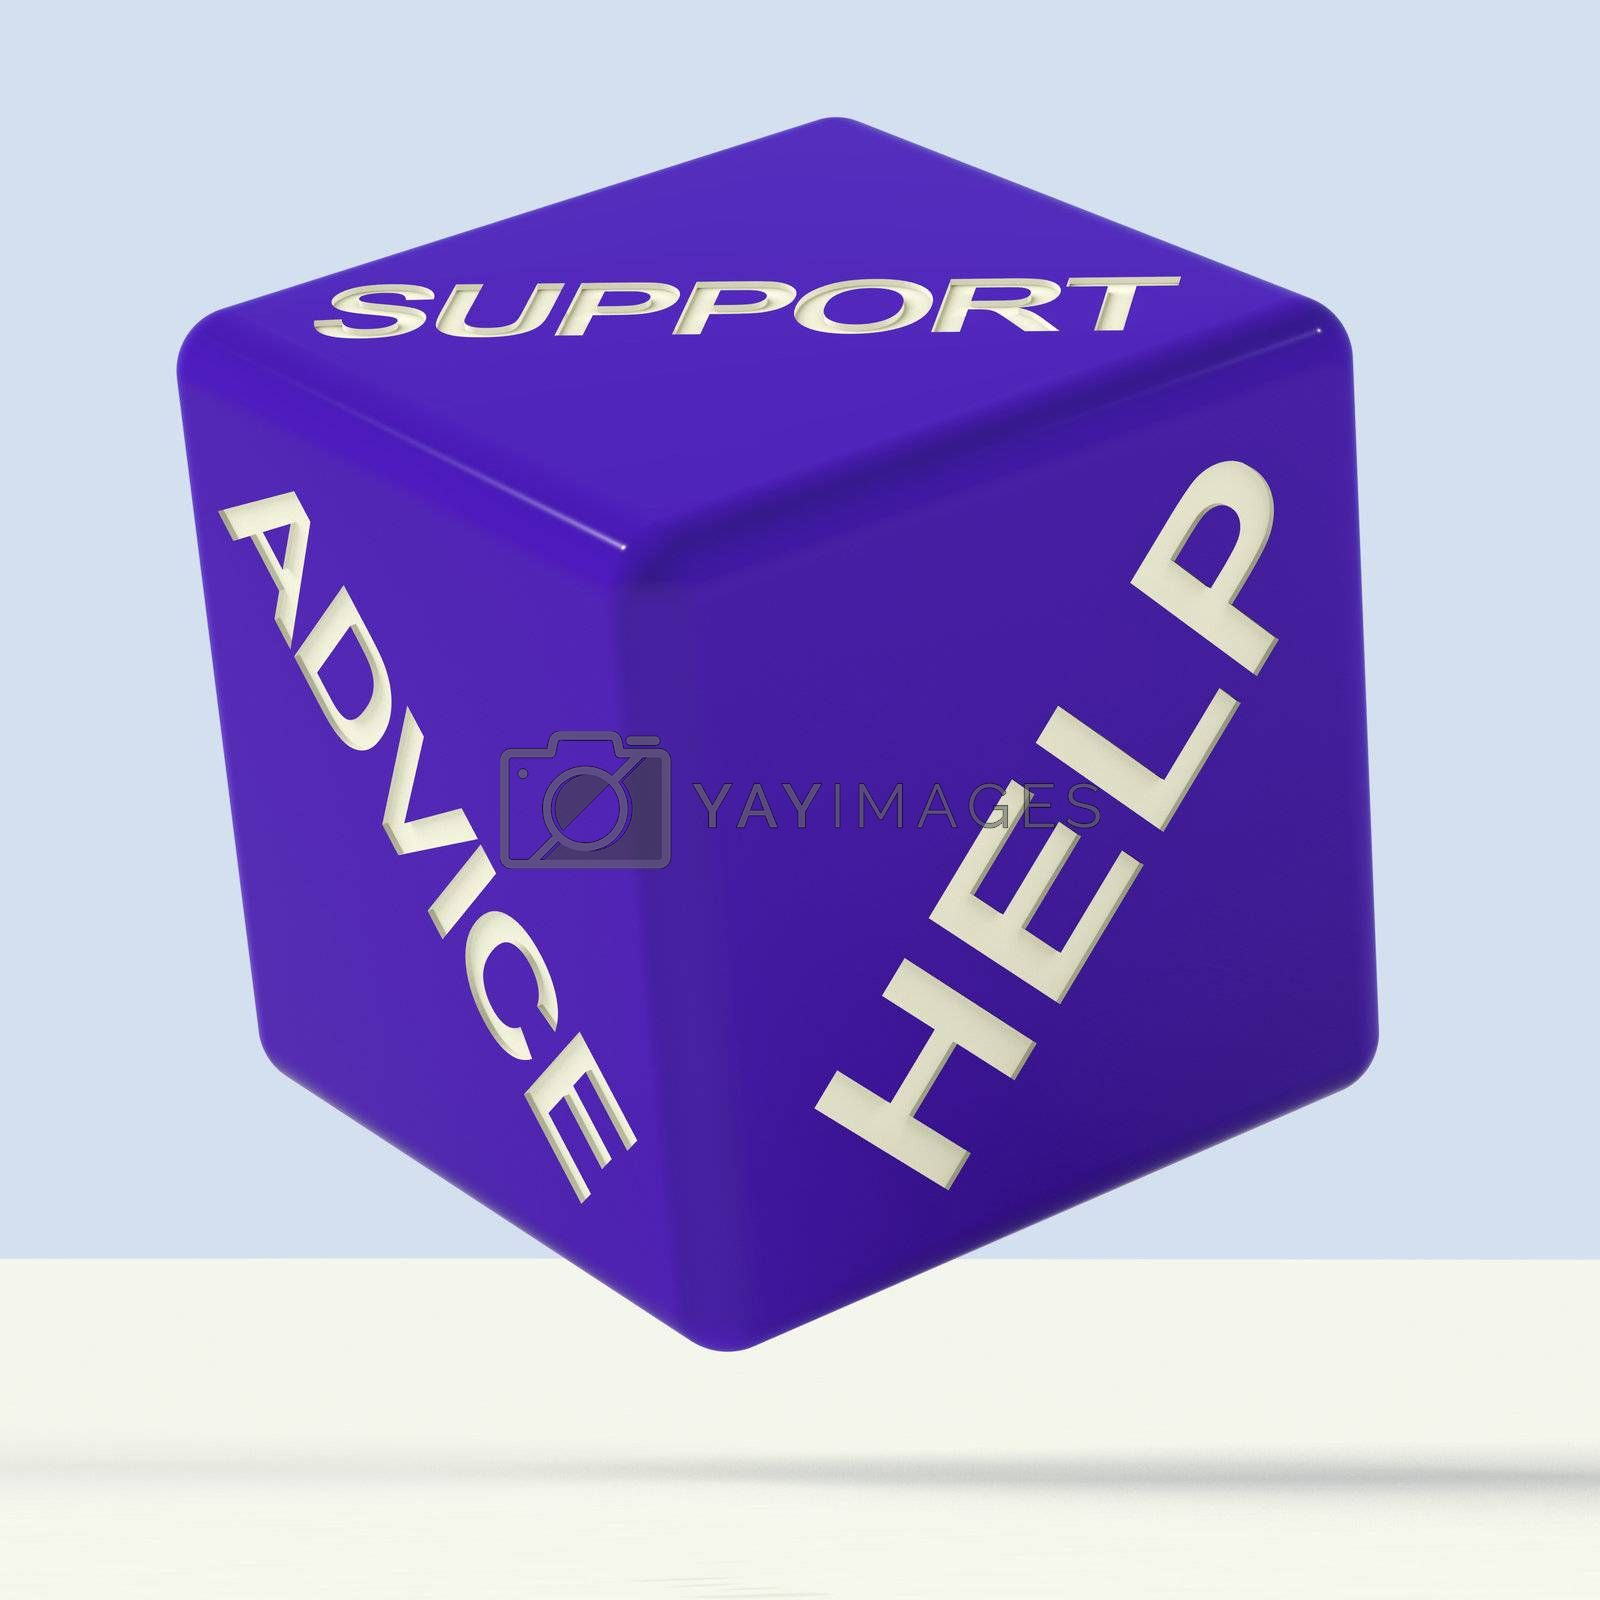 Support Advice Help Blue Dice Representing Questions And Answers